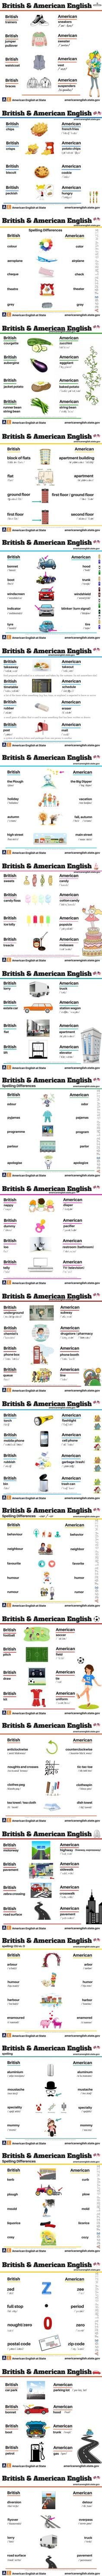 British Vs American English: 100+ Differences Illustrated